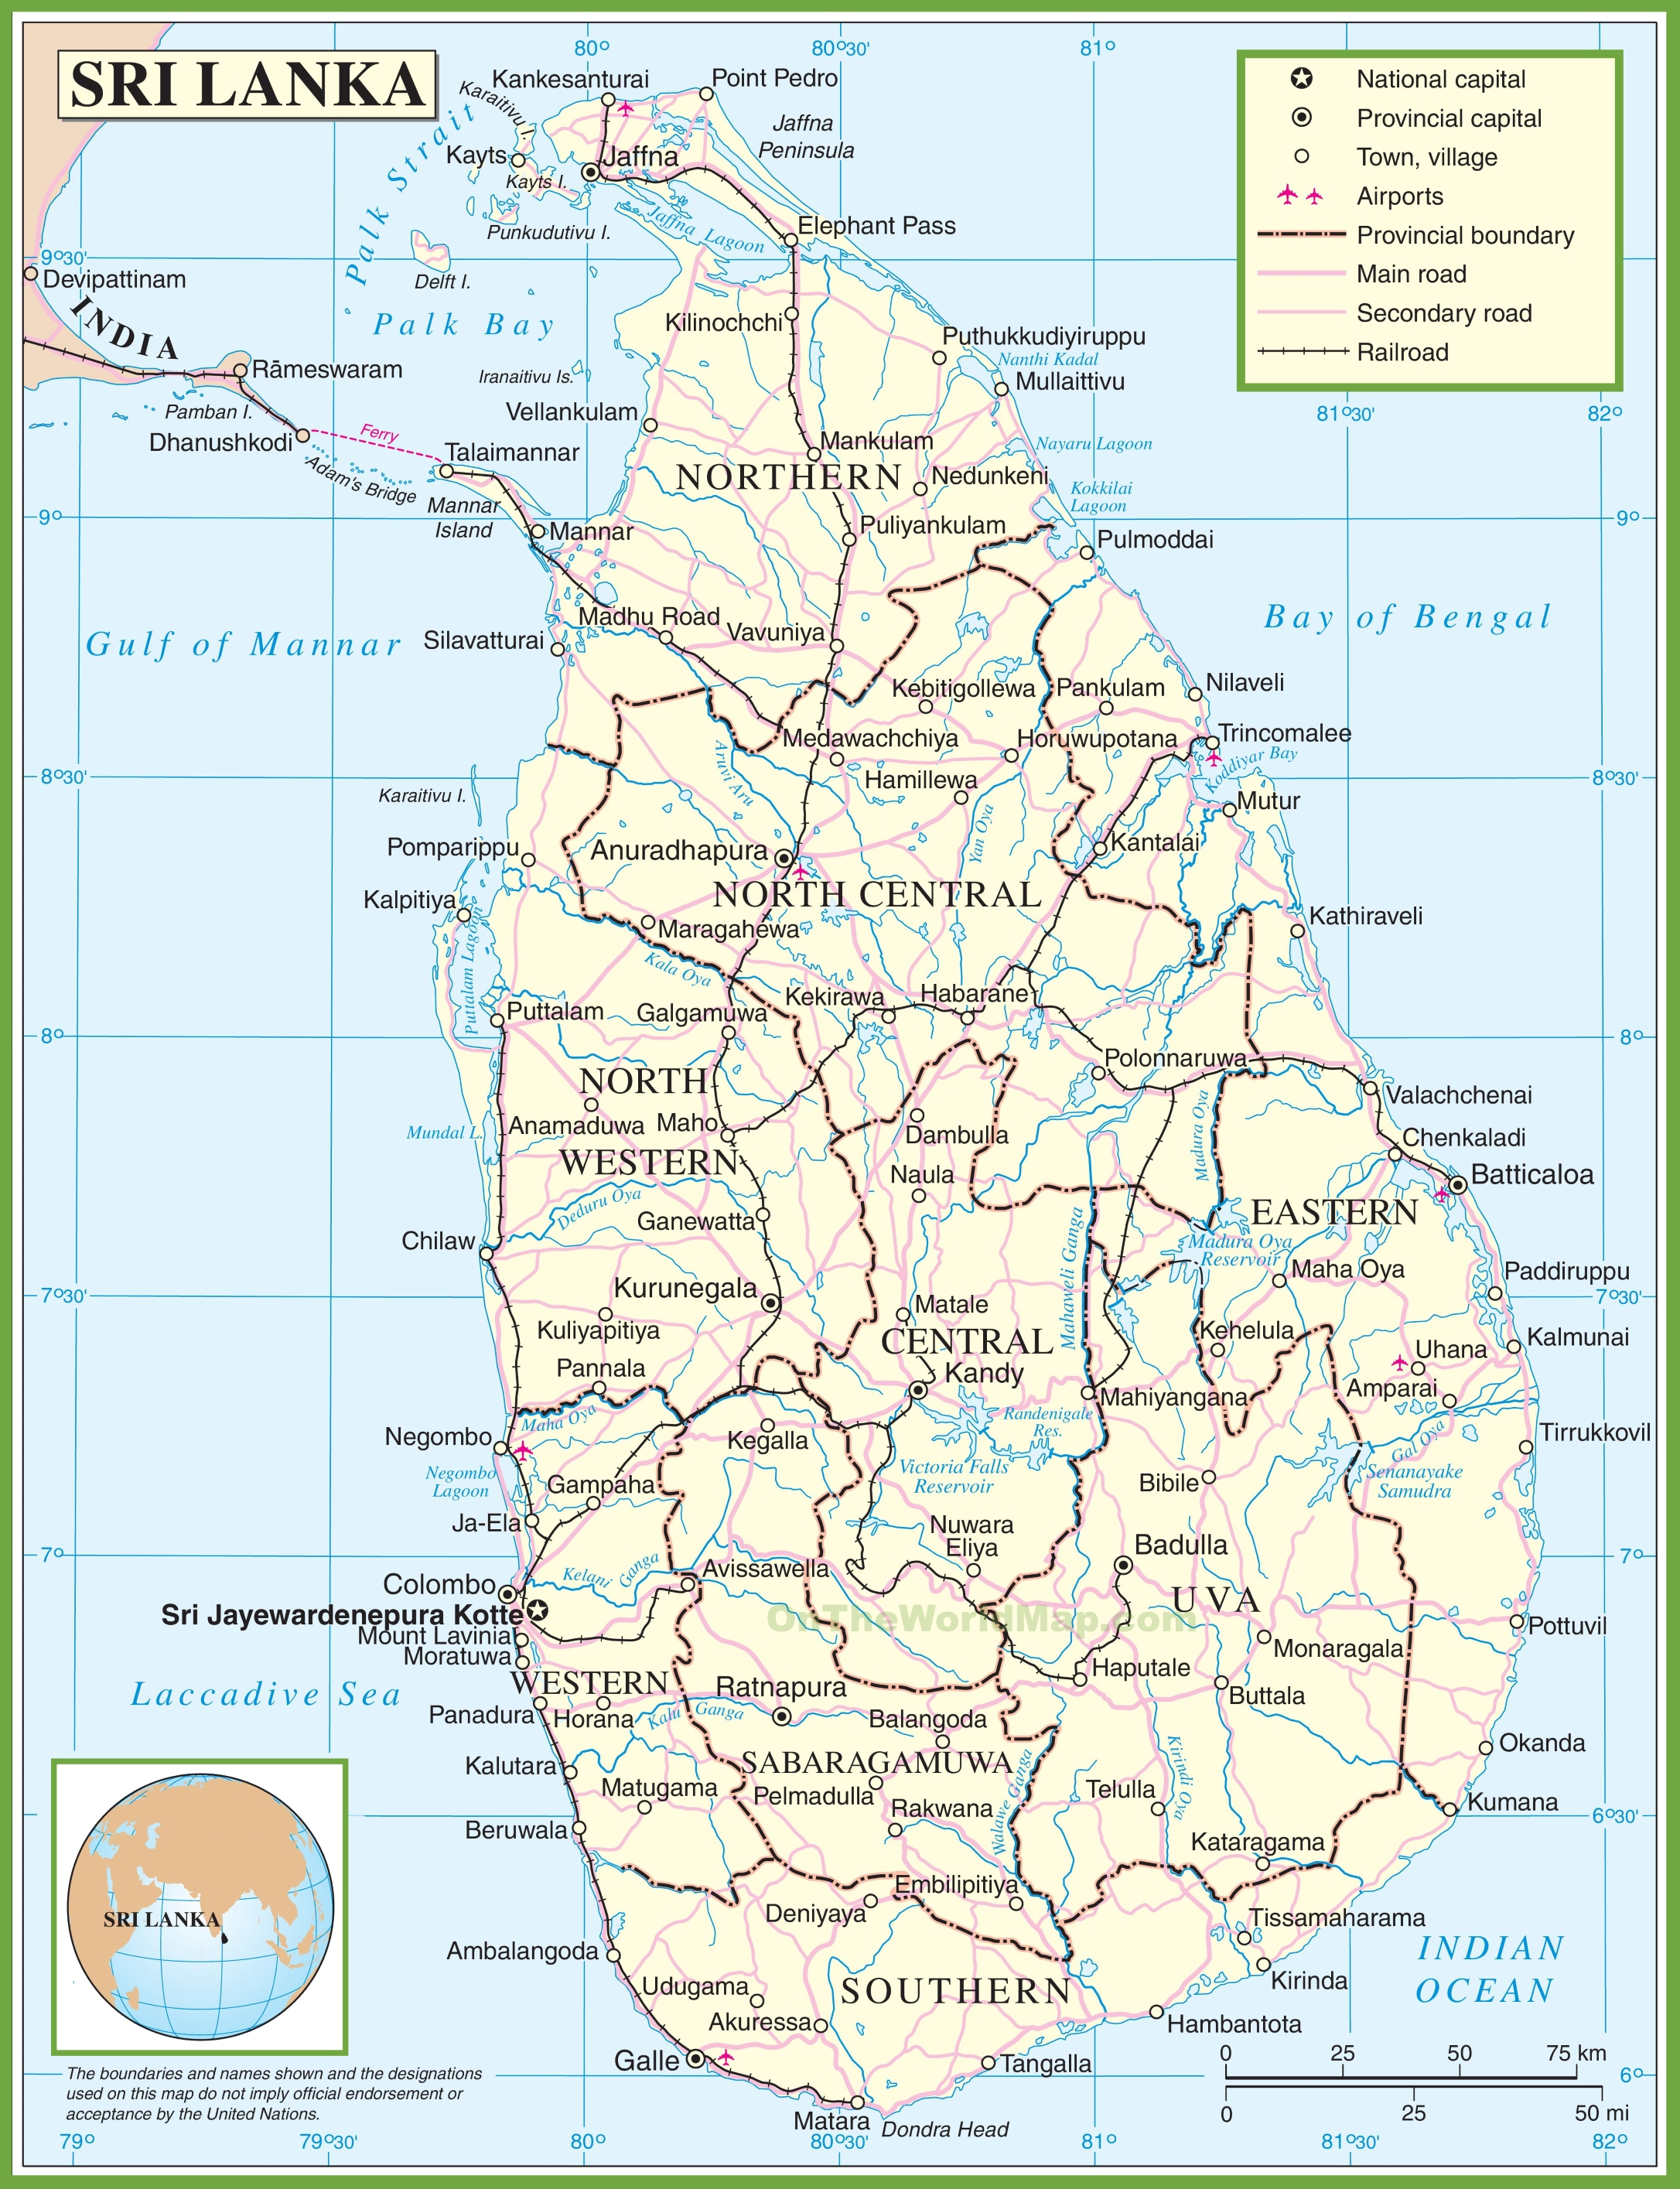 Sri Lanka Political Map.Sri Lanka Political Map